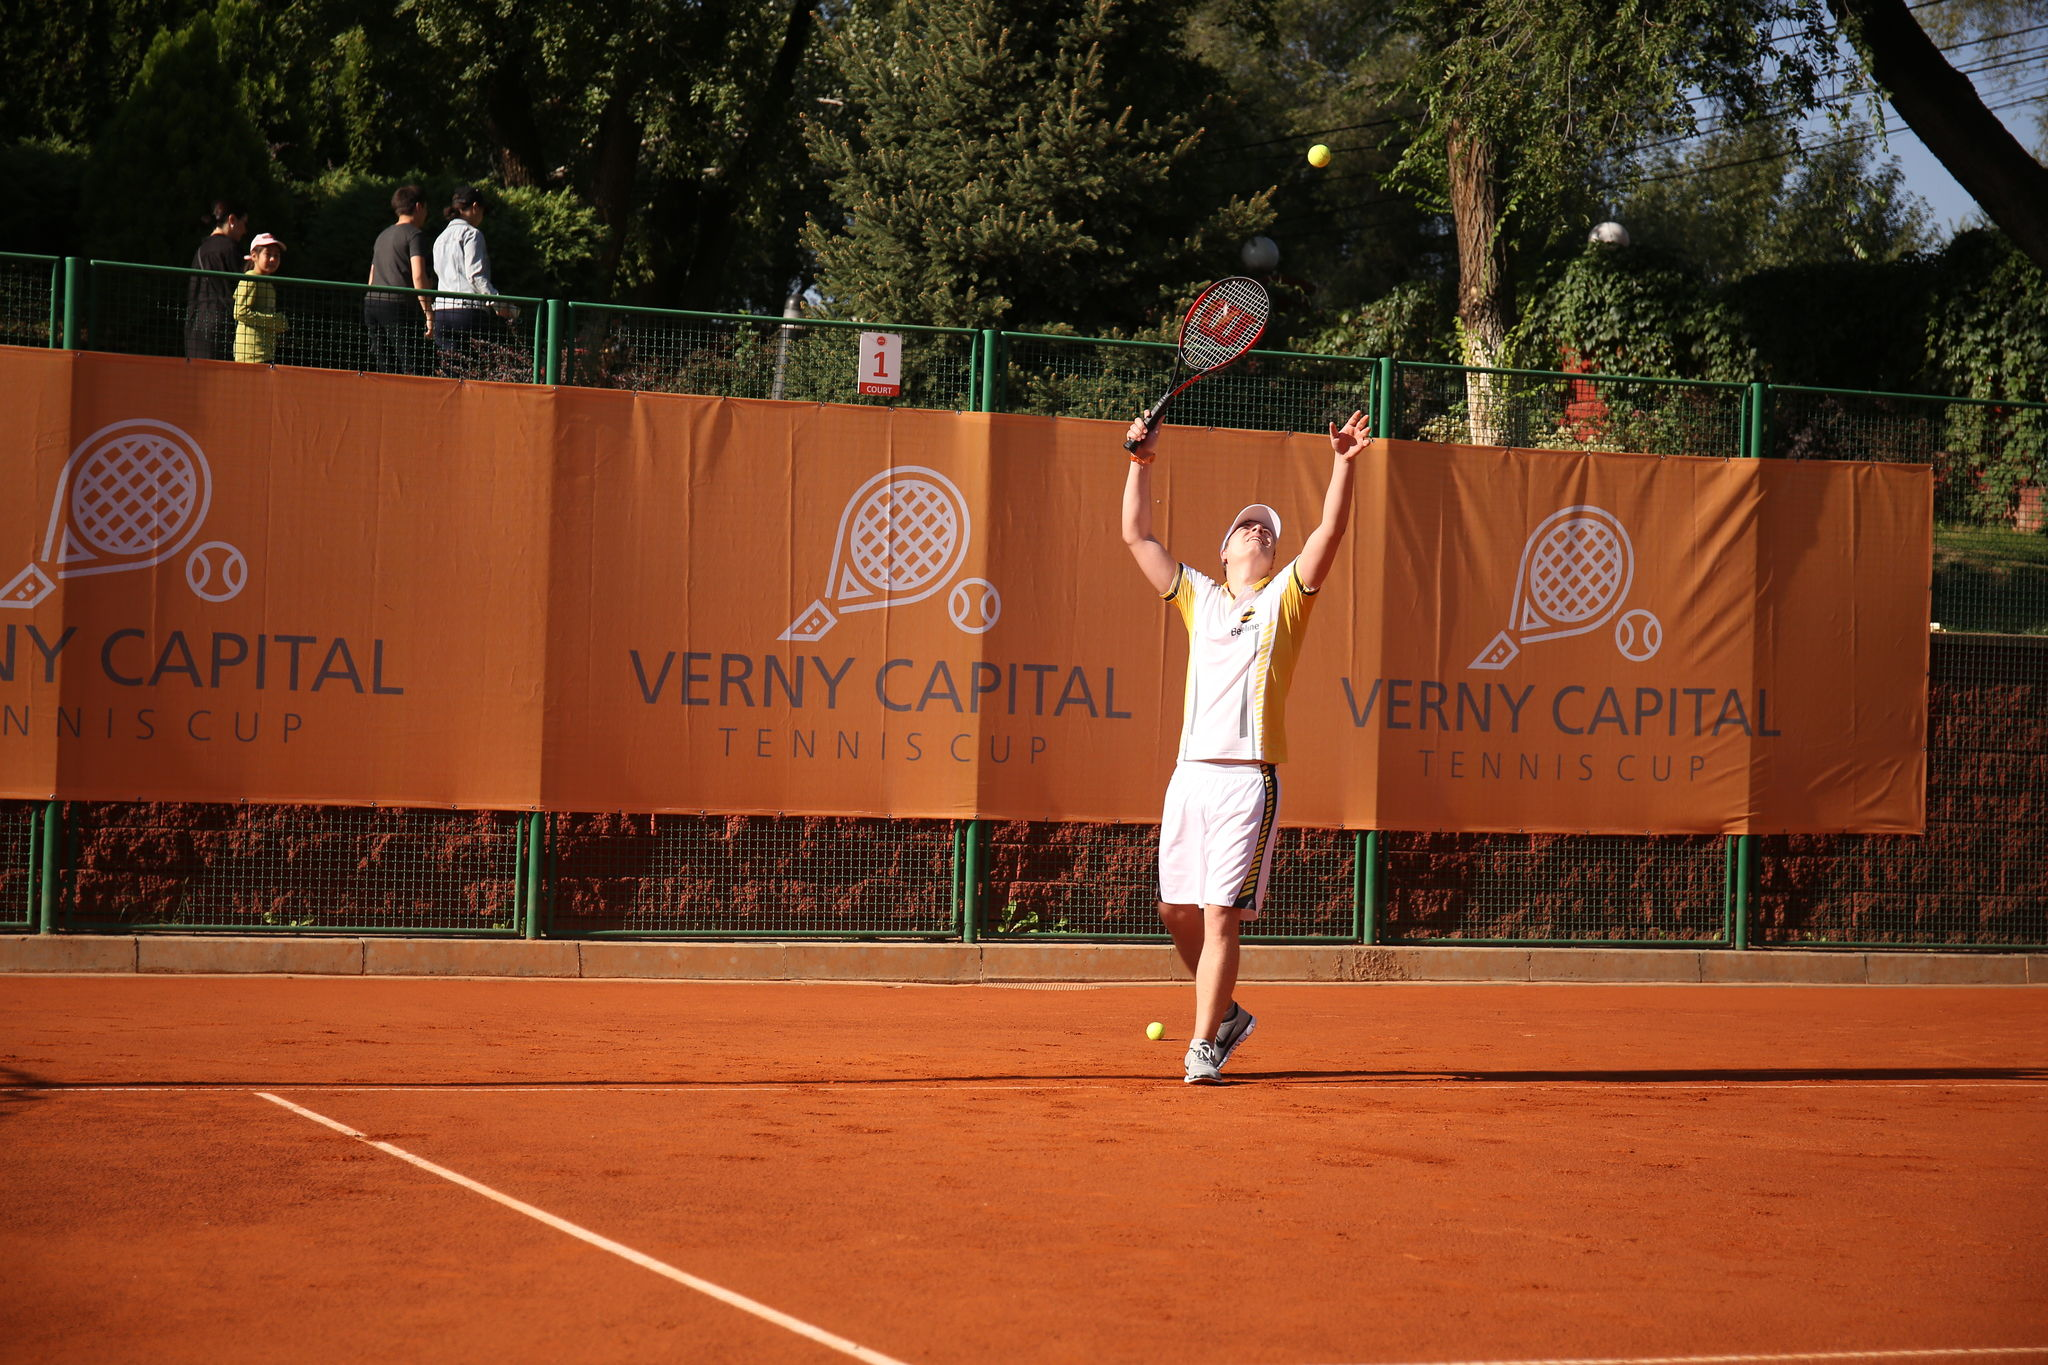 The first Verny Capital Tennis Cup corporate tournament 2019